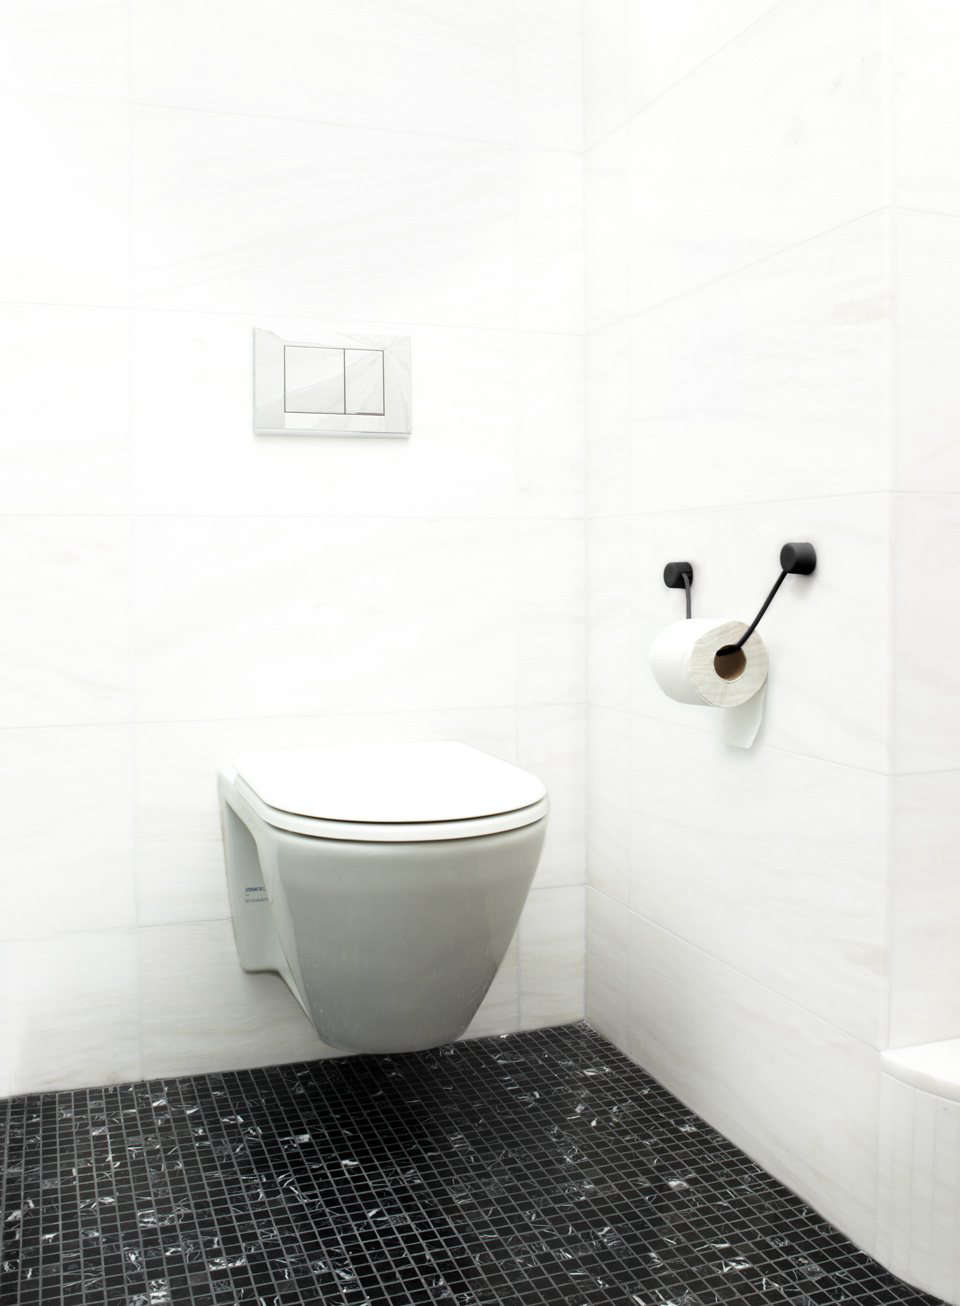 Covered Toilet Paper Storage 5 Quick Fixes Inventive Toilet Paper Storage Remodelista